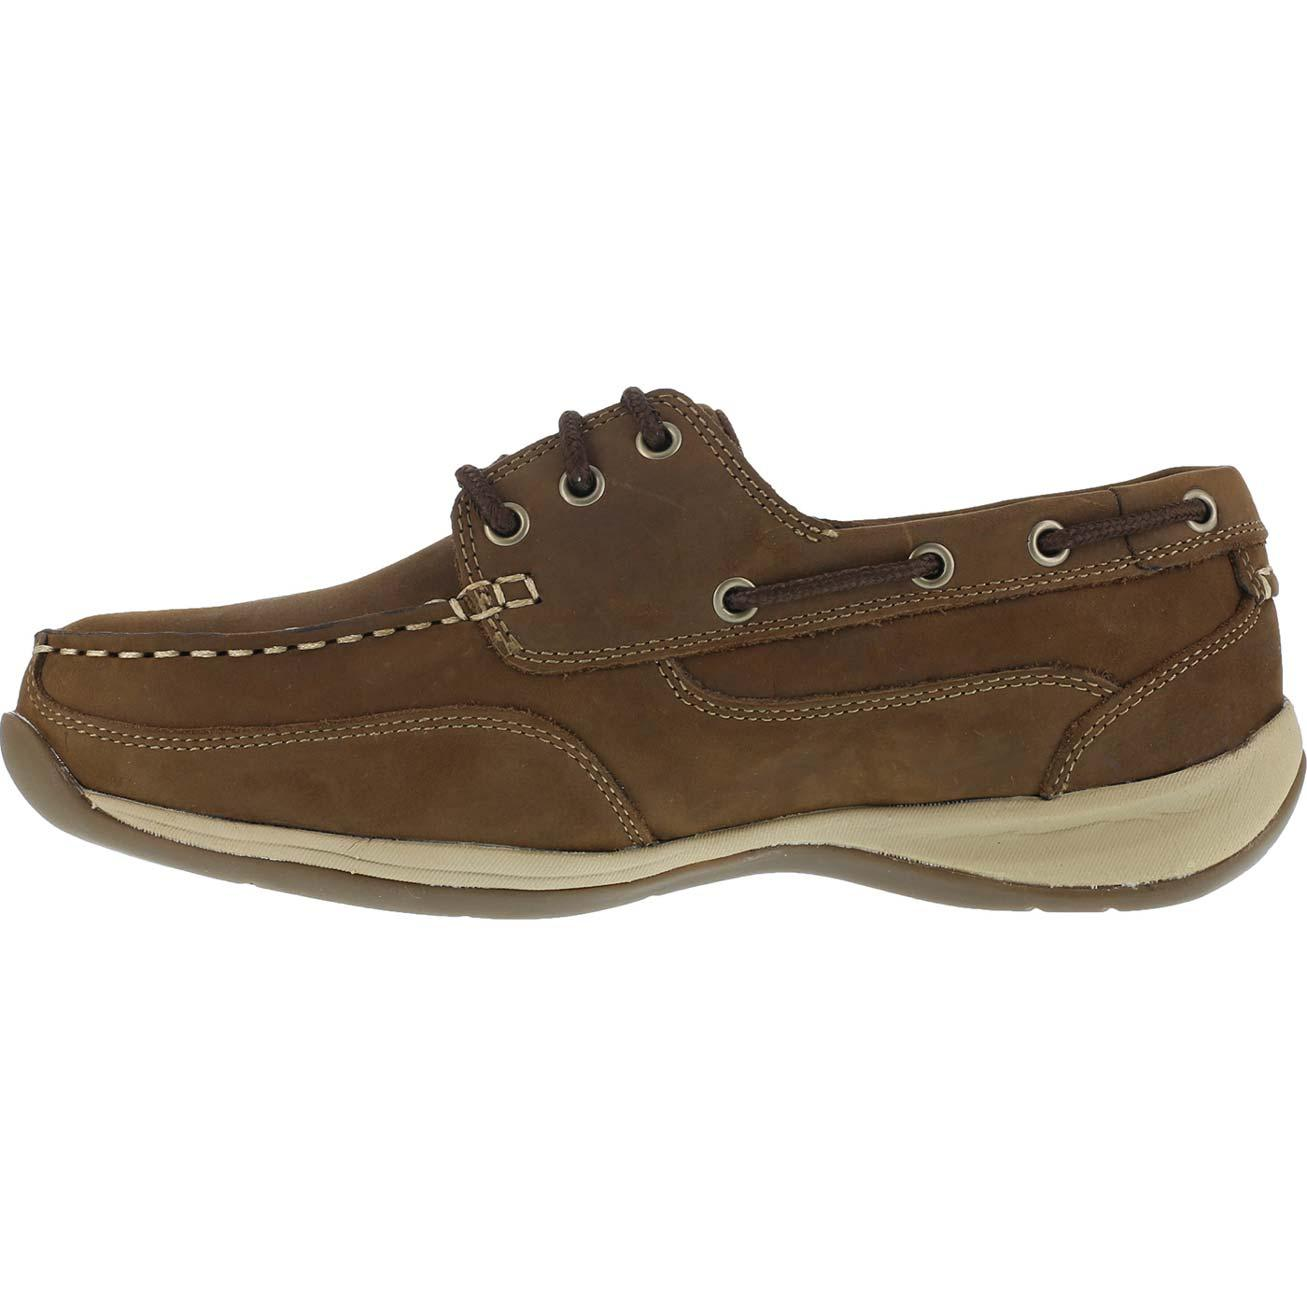 Brown Rockport Womens Safety Shoes